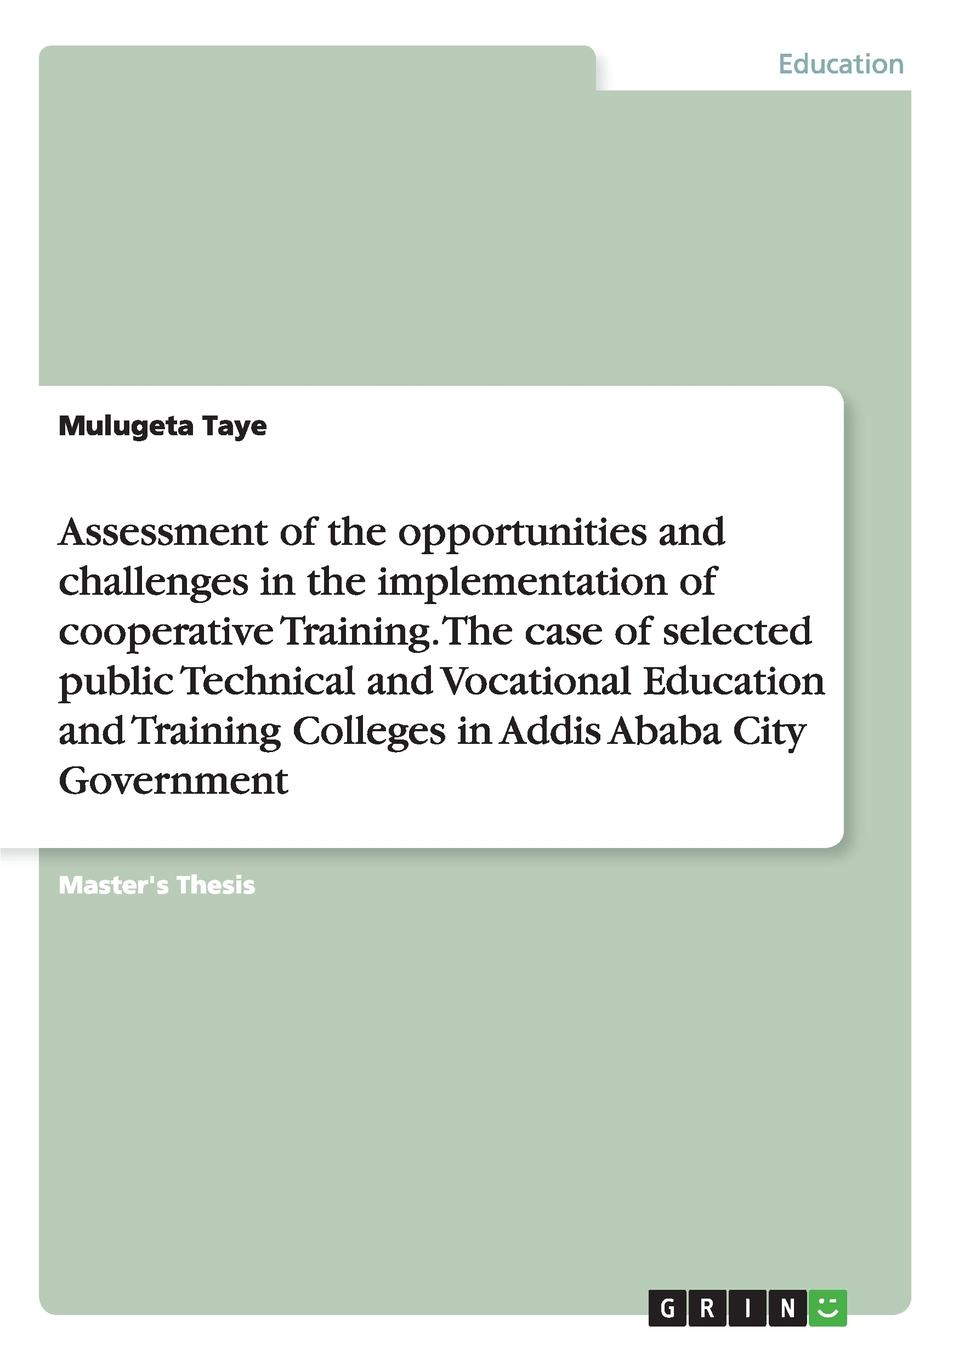 Mulugeta Taye Assessment of the opportunities and challenges in the implementation of cooperative Training. The case of selected public Technical and Vocational Education and Training Colleges in Addis Ababa City Government